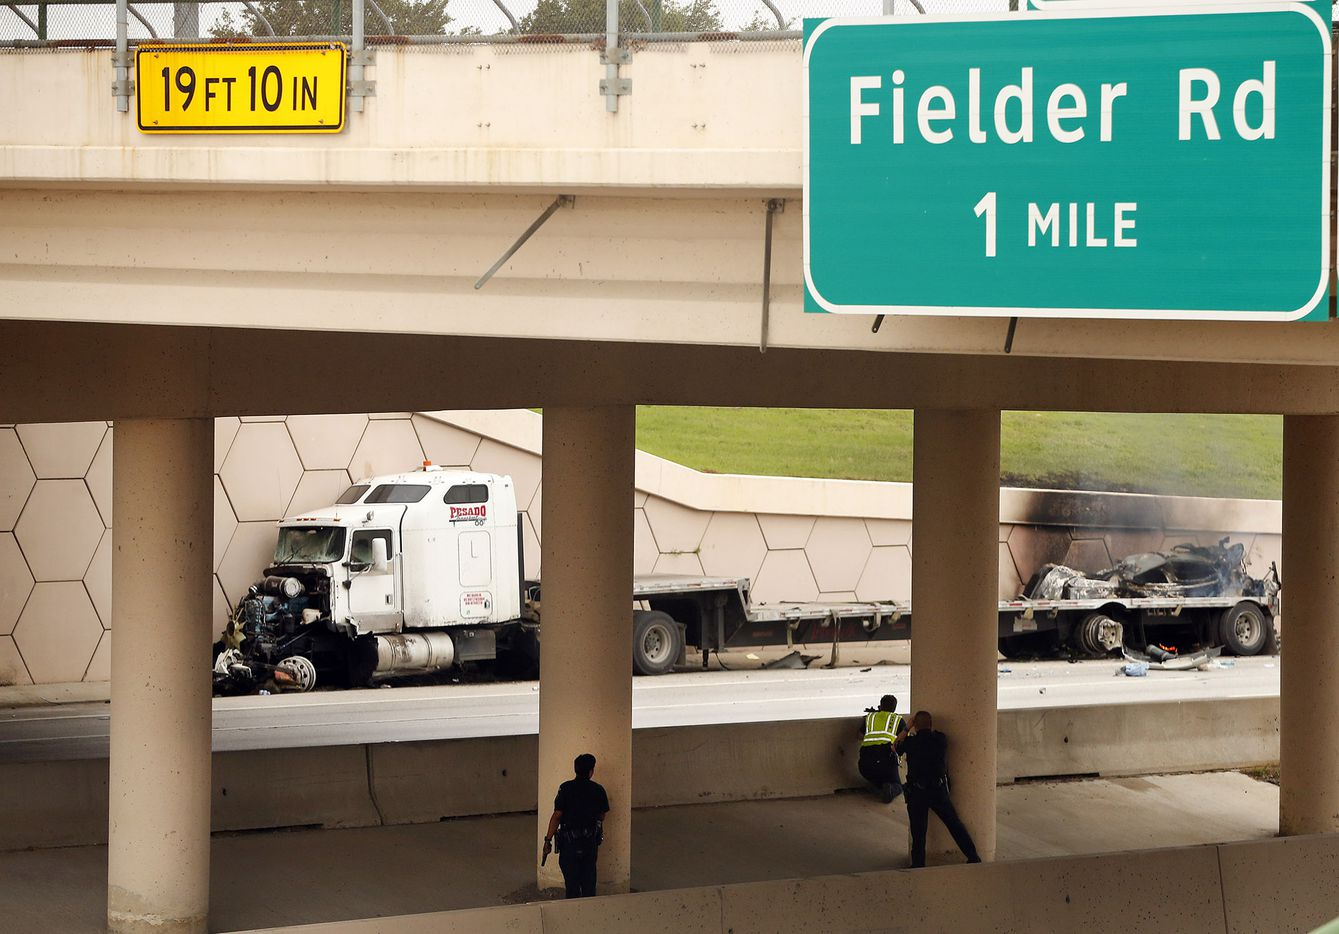 Police officers draw their guns on a semi truck after it wrecked following a high speed chase on Interstate 30 at Cooper St. in Arlington  Friday, June 9, 2017. A vehicle alongside the semi was pinned up against the wall and burned. (Tom Fox/The Dallas Morning News)